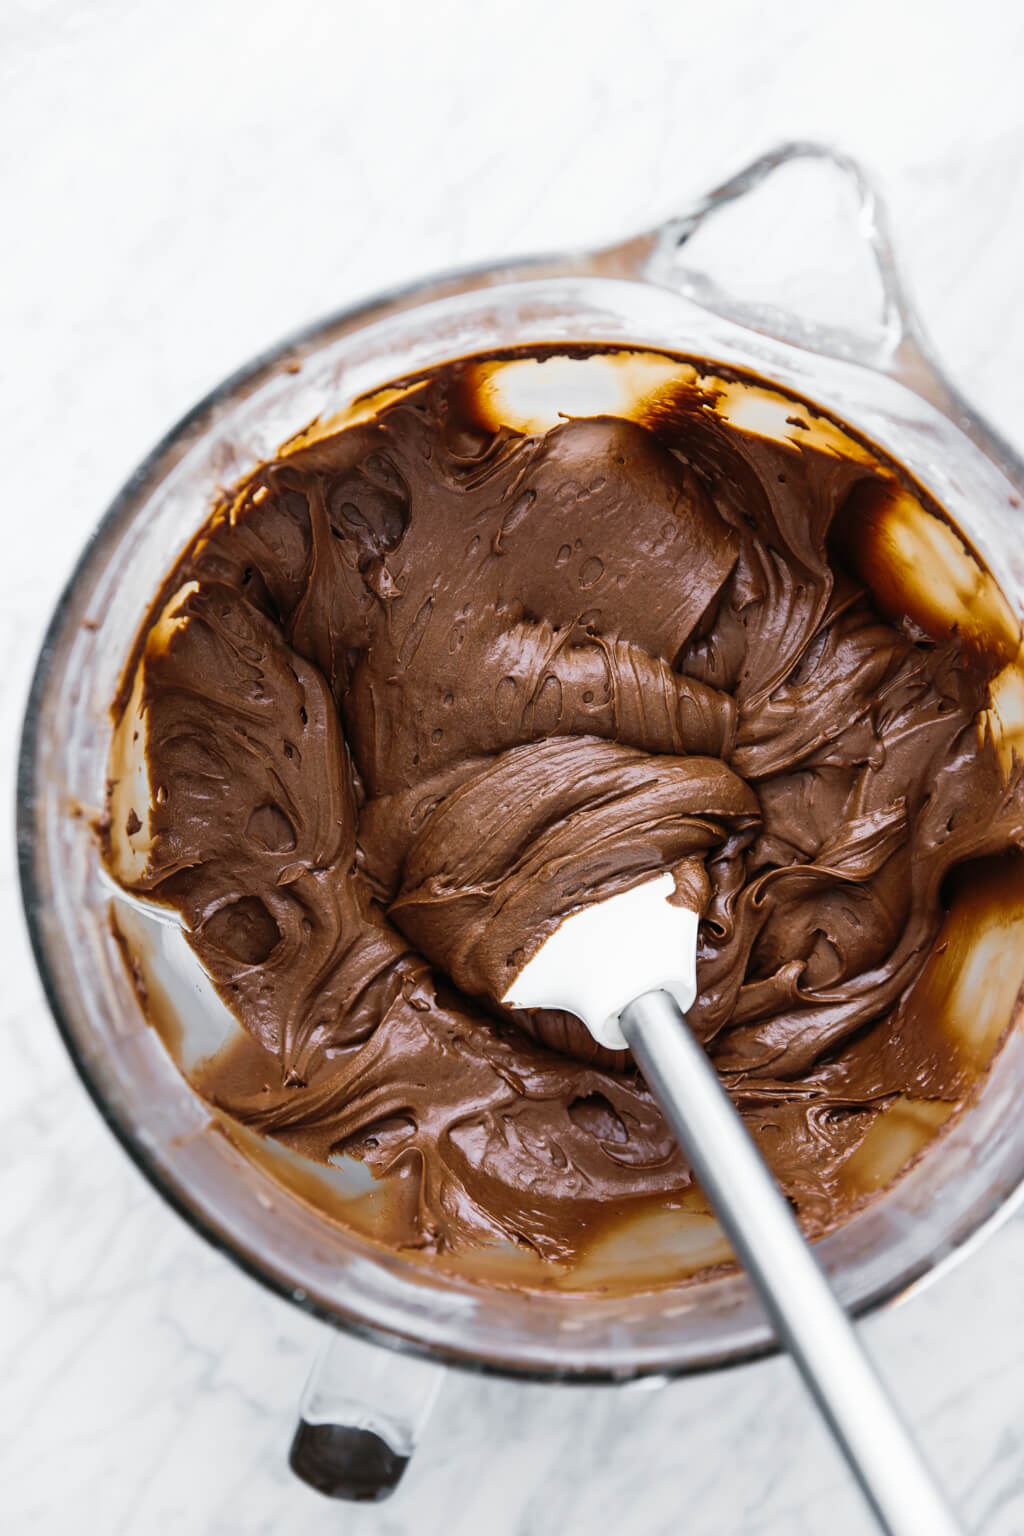 This vegan chocolate buttercream frosting is dairy-free and can be modified into a paleo buttercream frosting as well. It's rich, decadent and delicious!